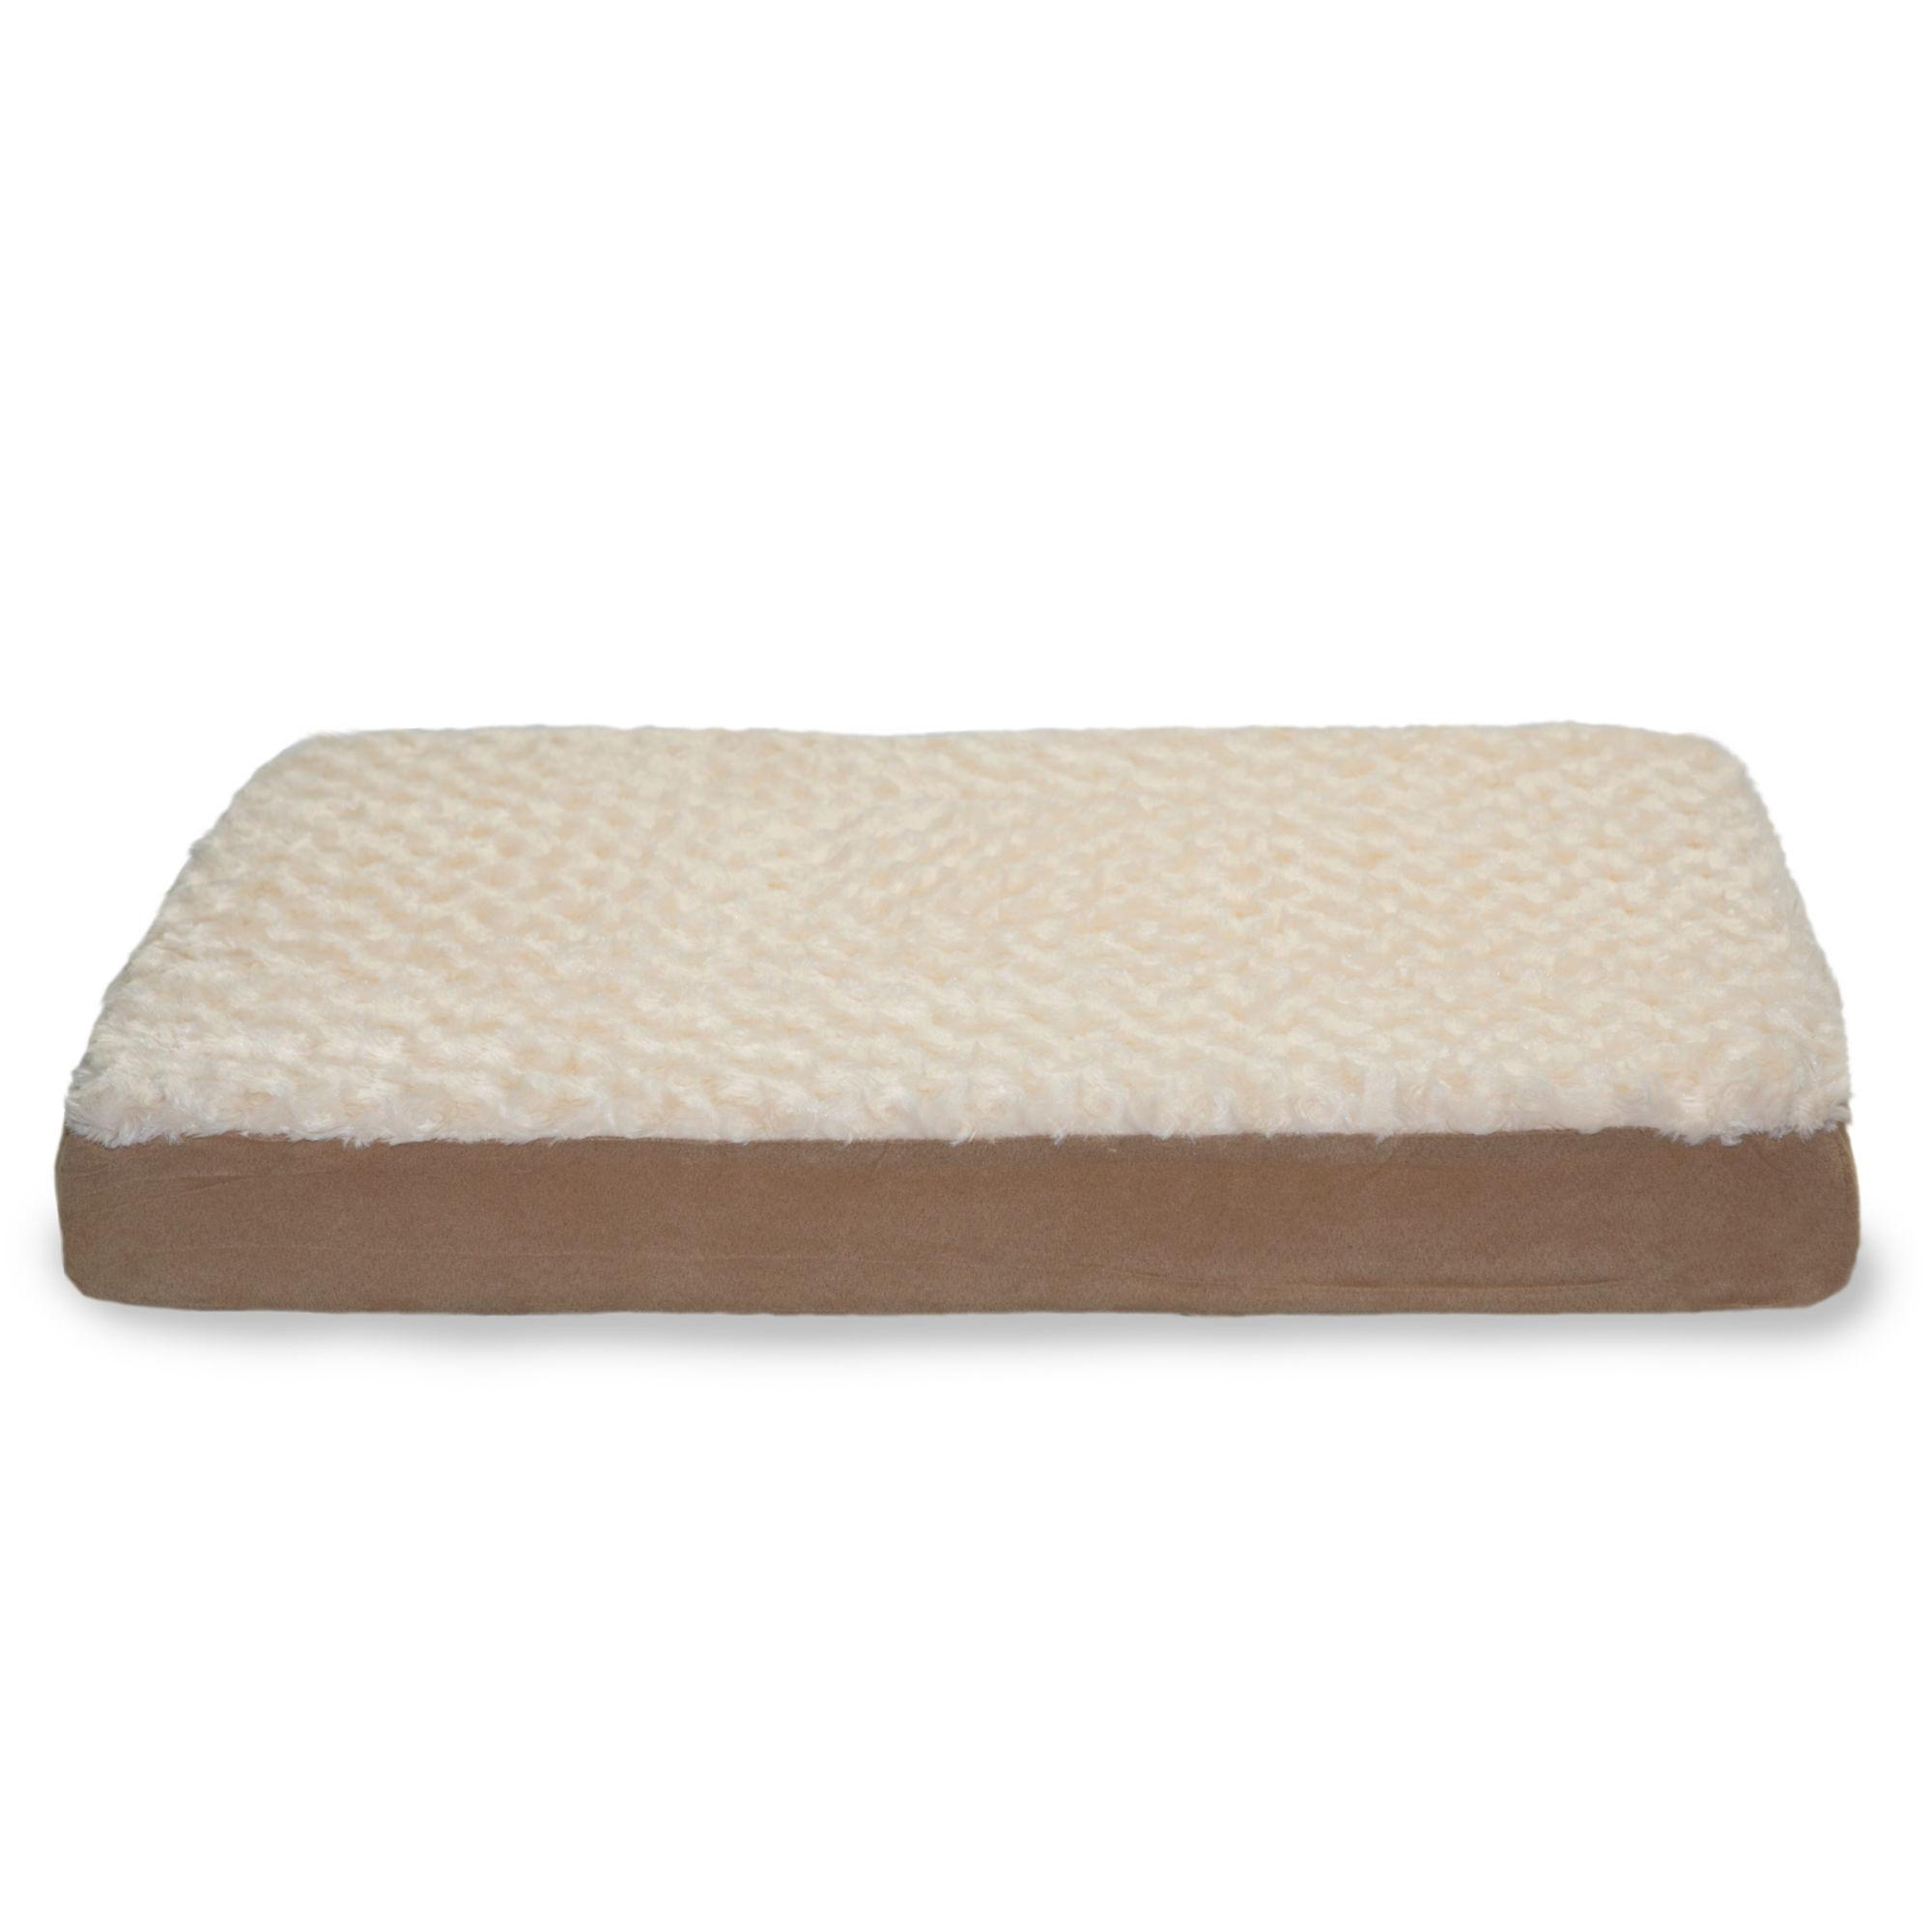 FurHaven Ultra Plush Deluxe Cooling Gel Top Pet Bed - Cream